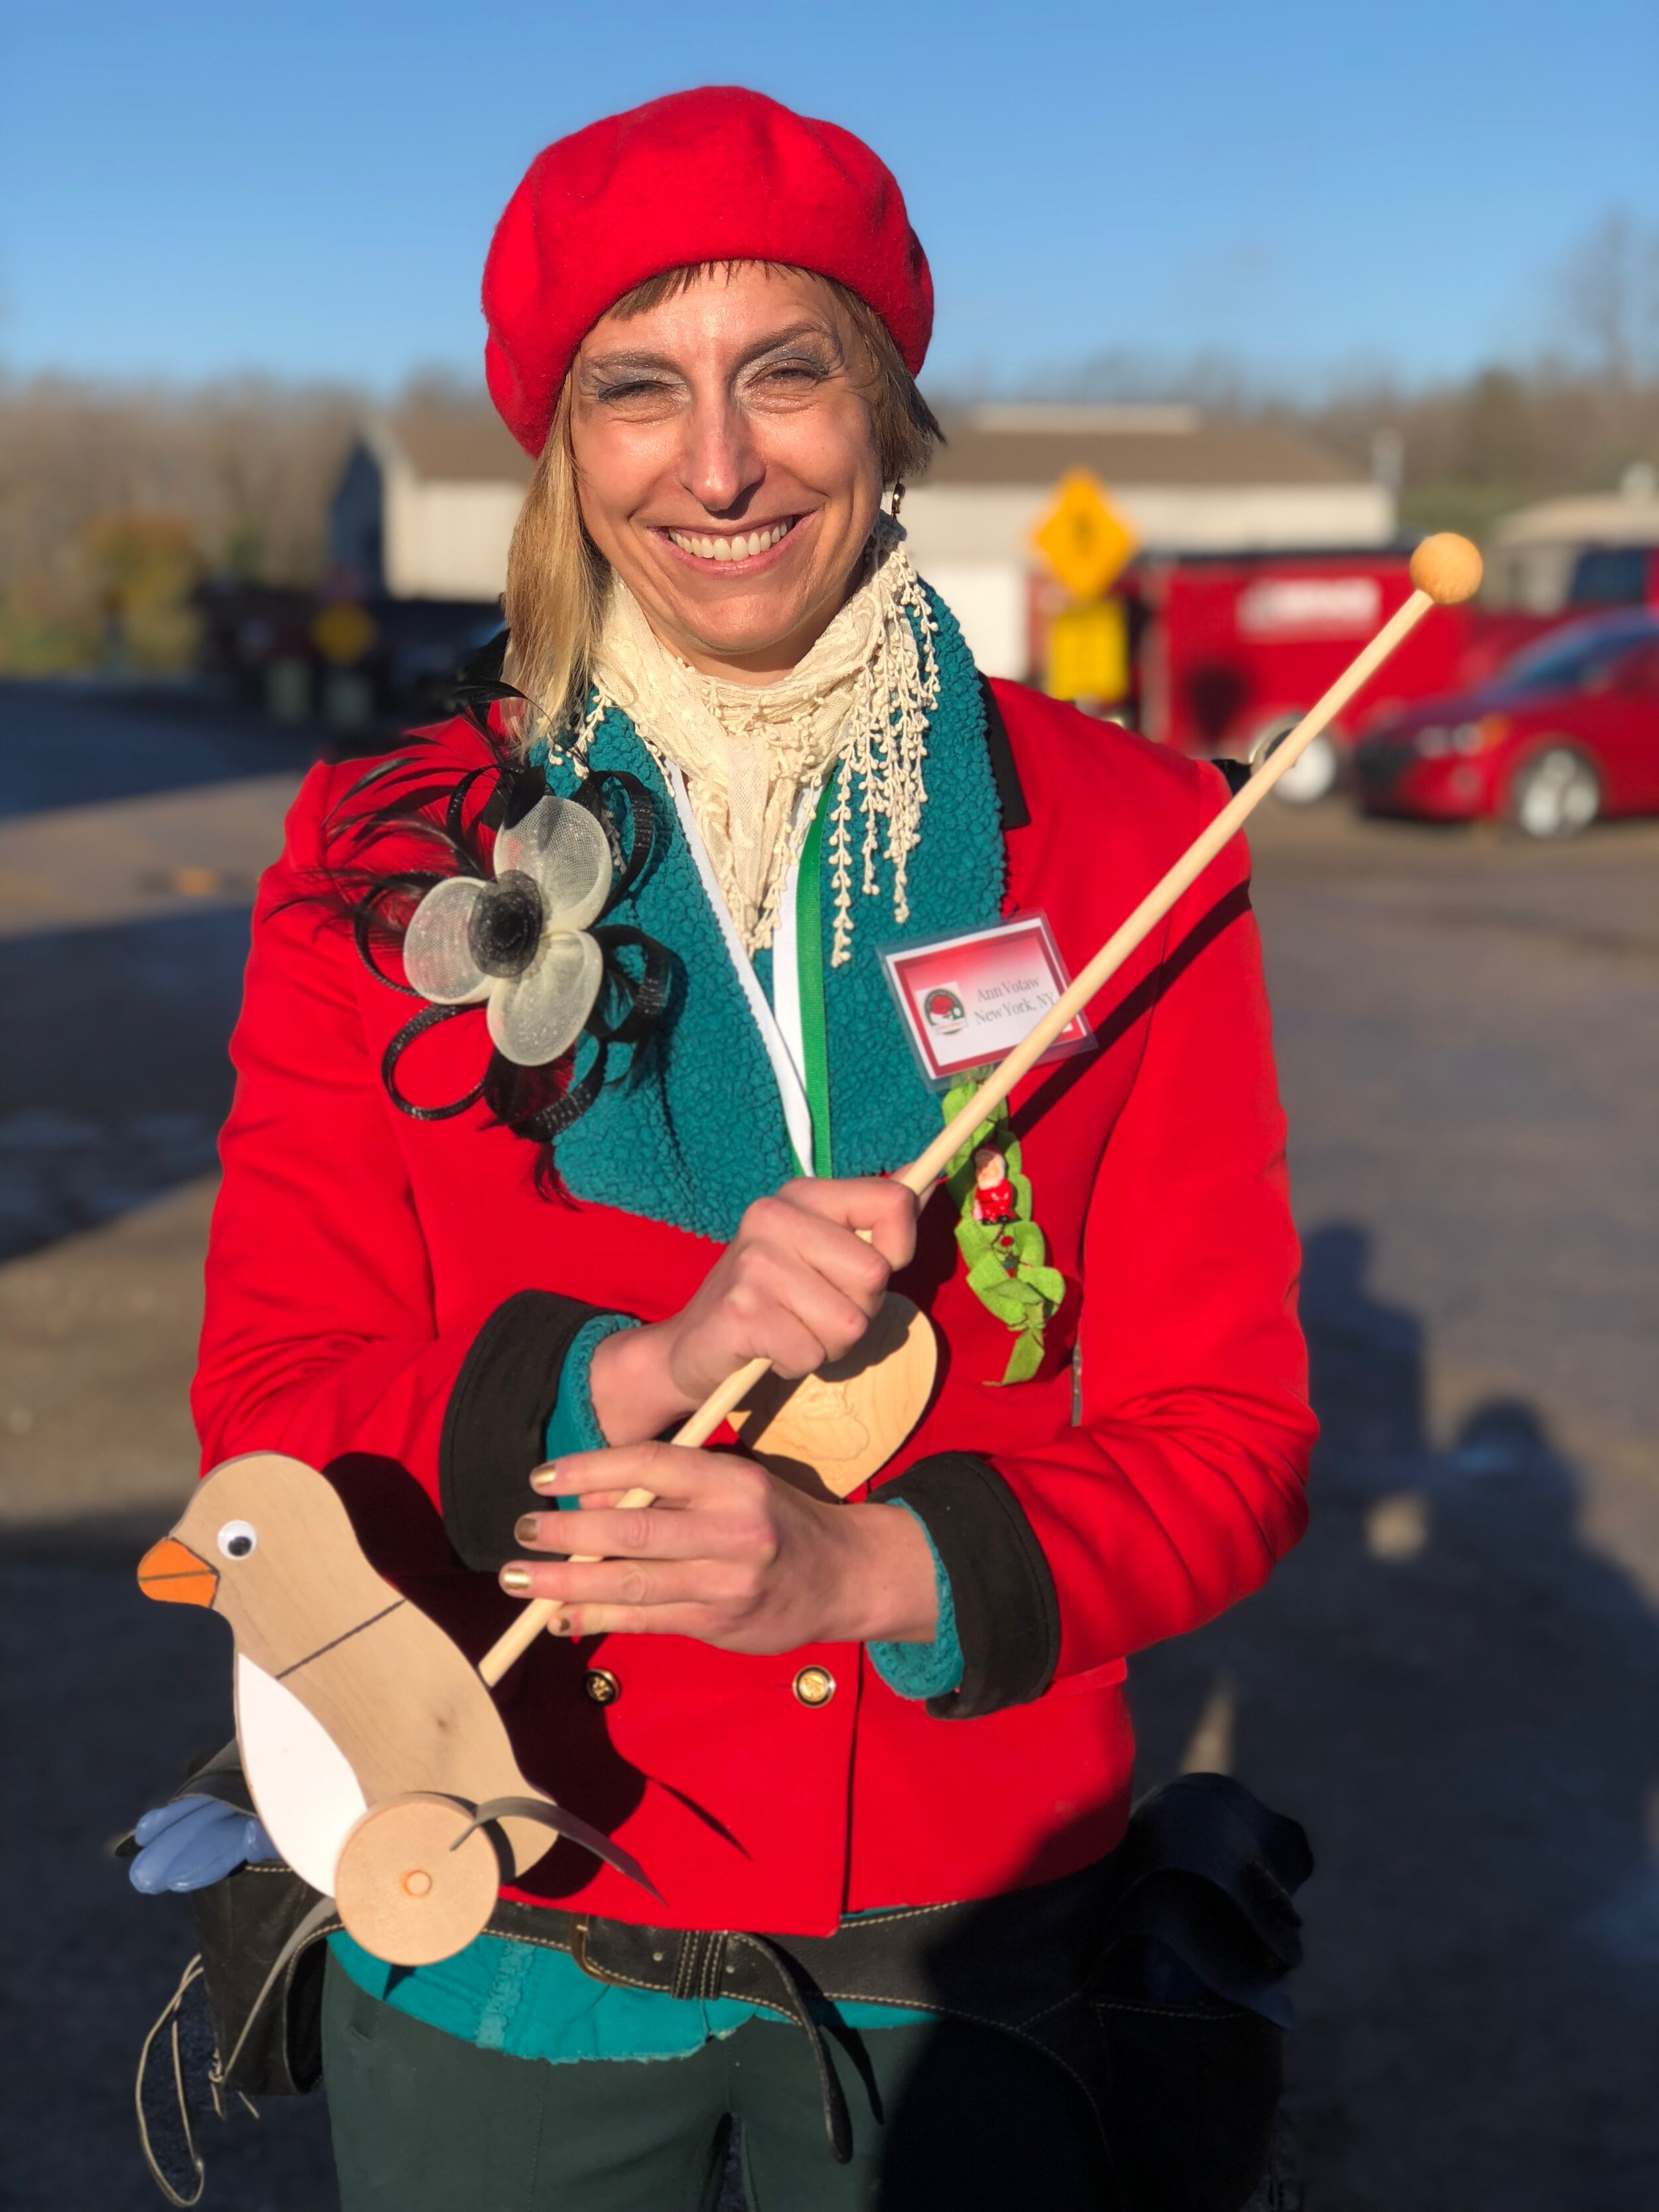 Ann Votaw the author holds the toy duck she made at Santa school in Midland, Michigan in October 2018..JPG